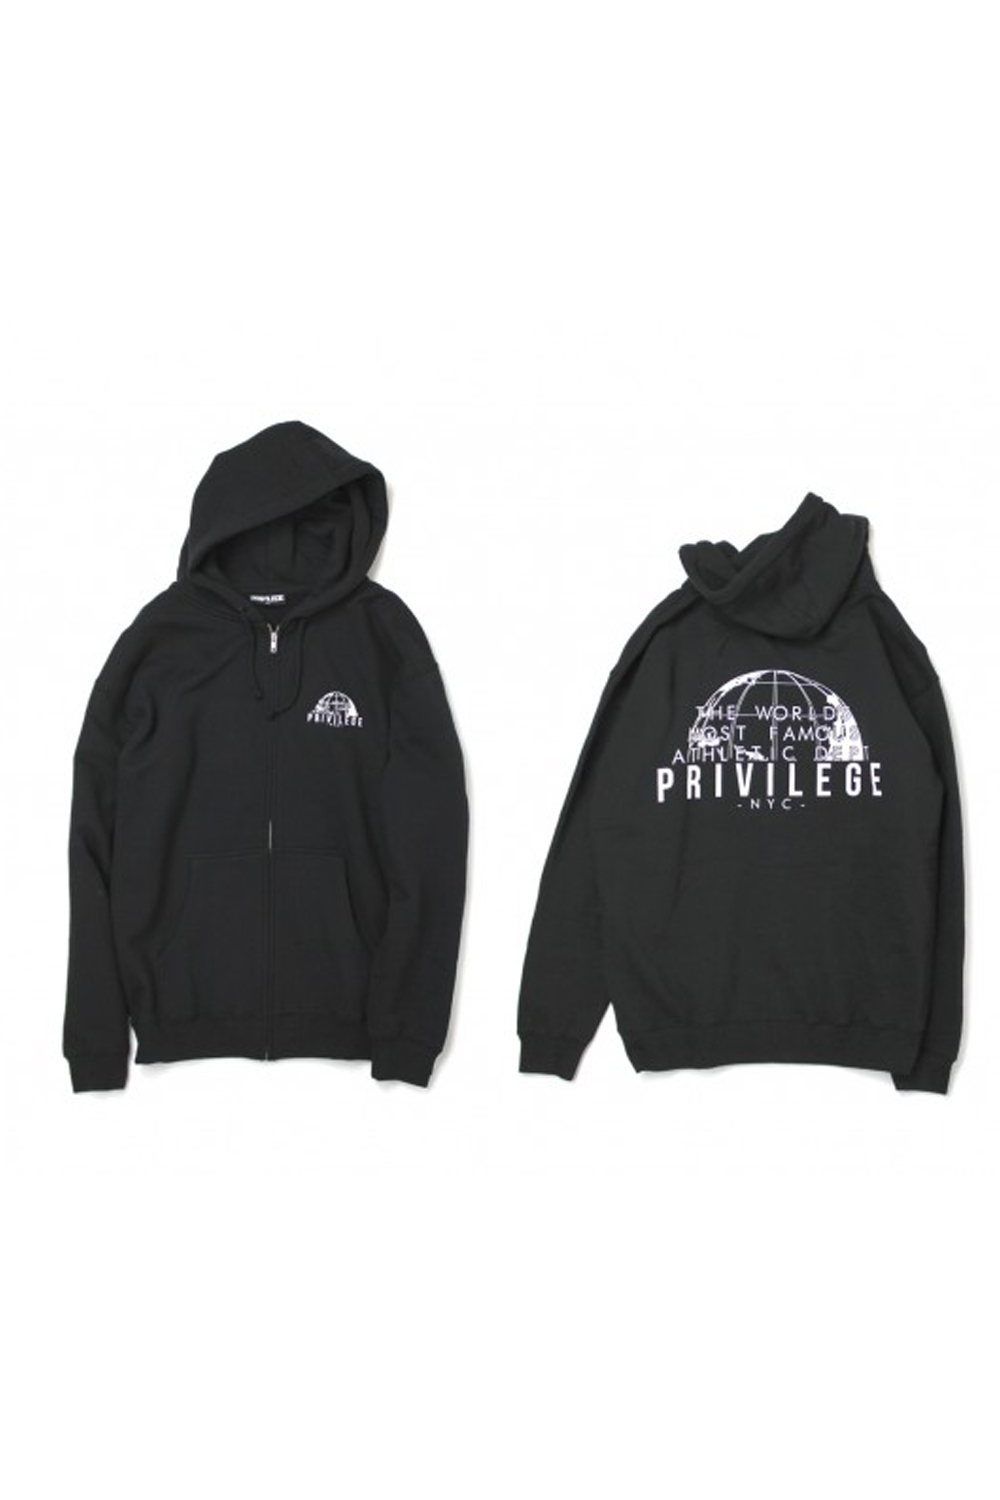 画像2: 【PRIVILEGE】WORLD FAMOUS ZIP UP HOODIE